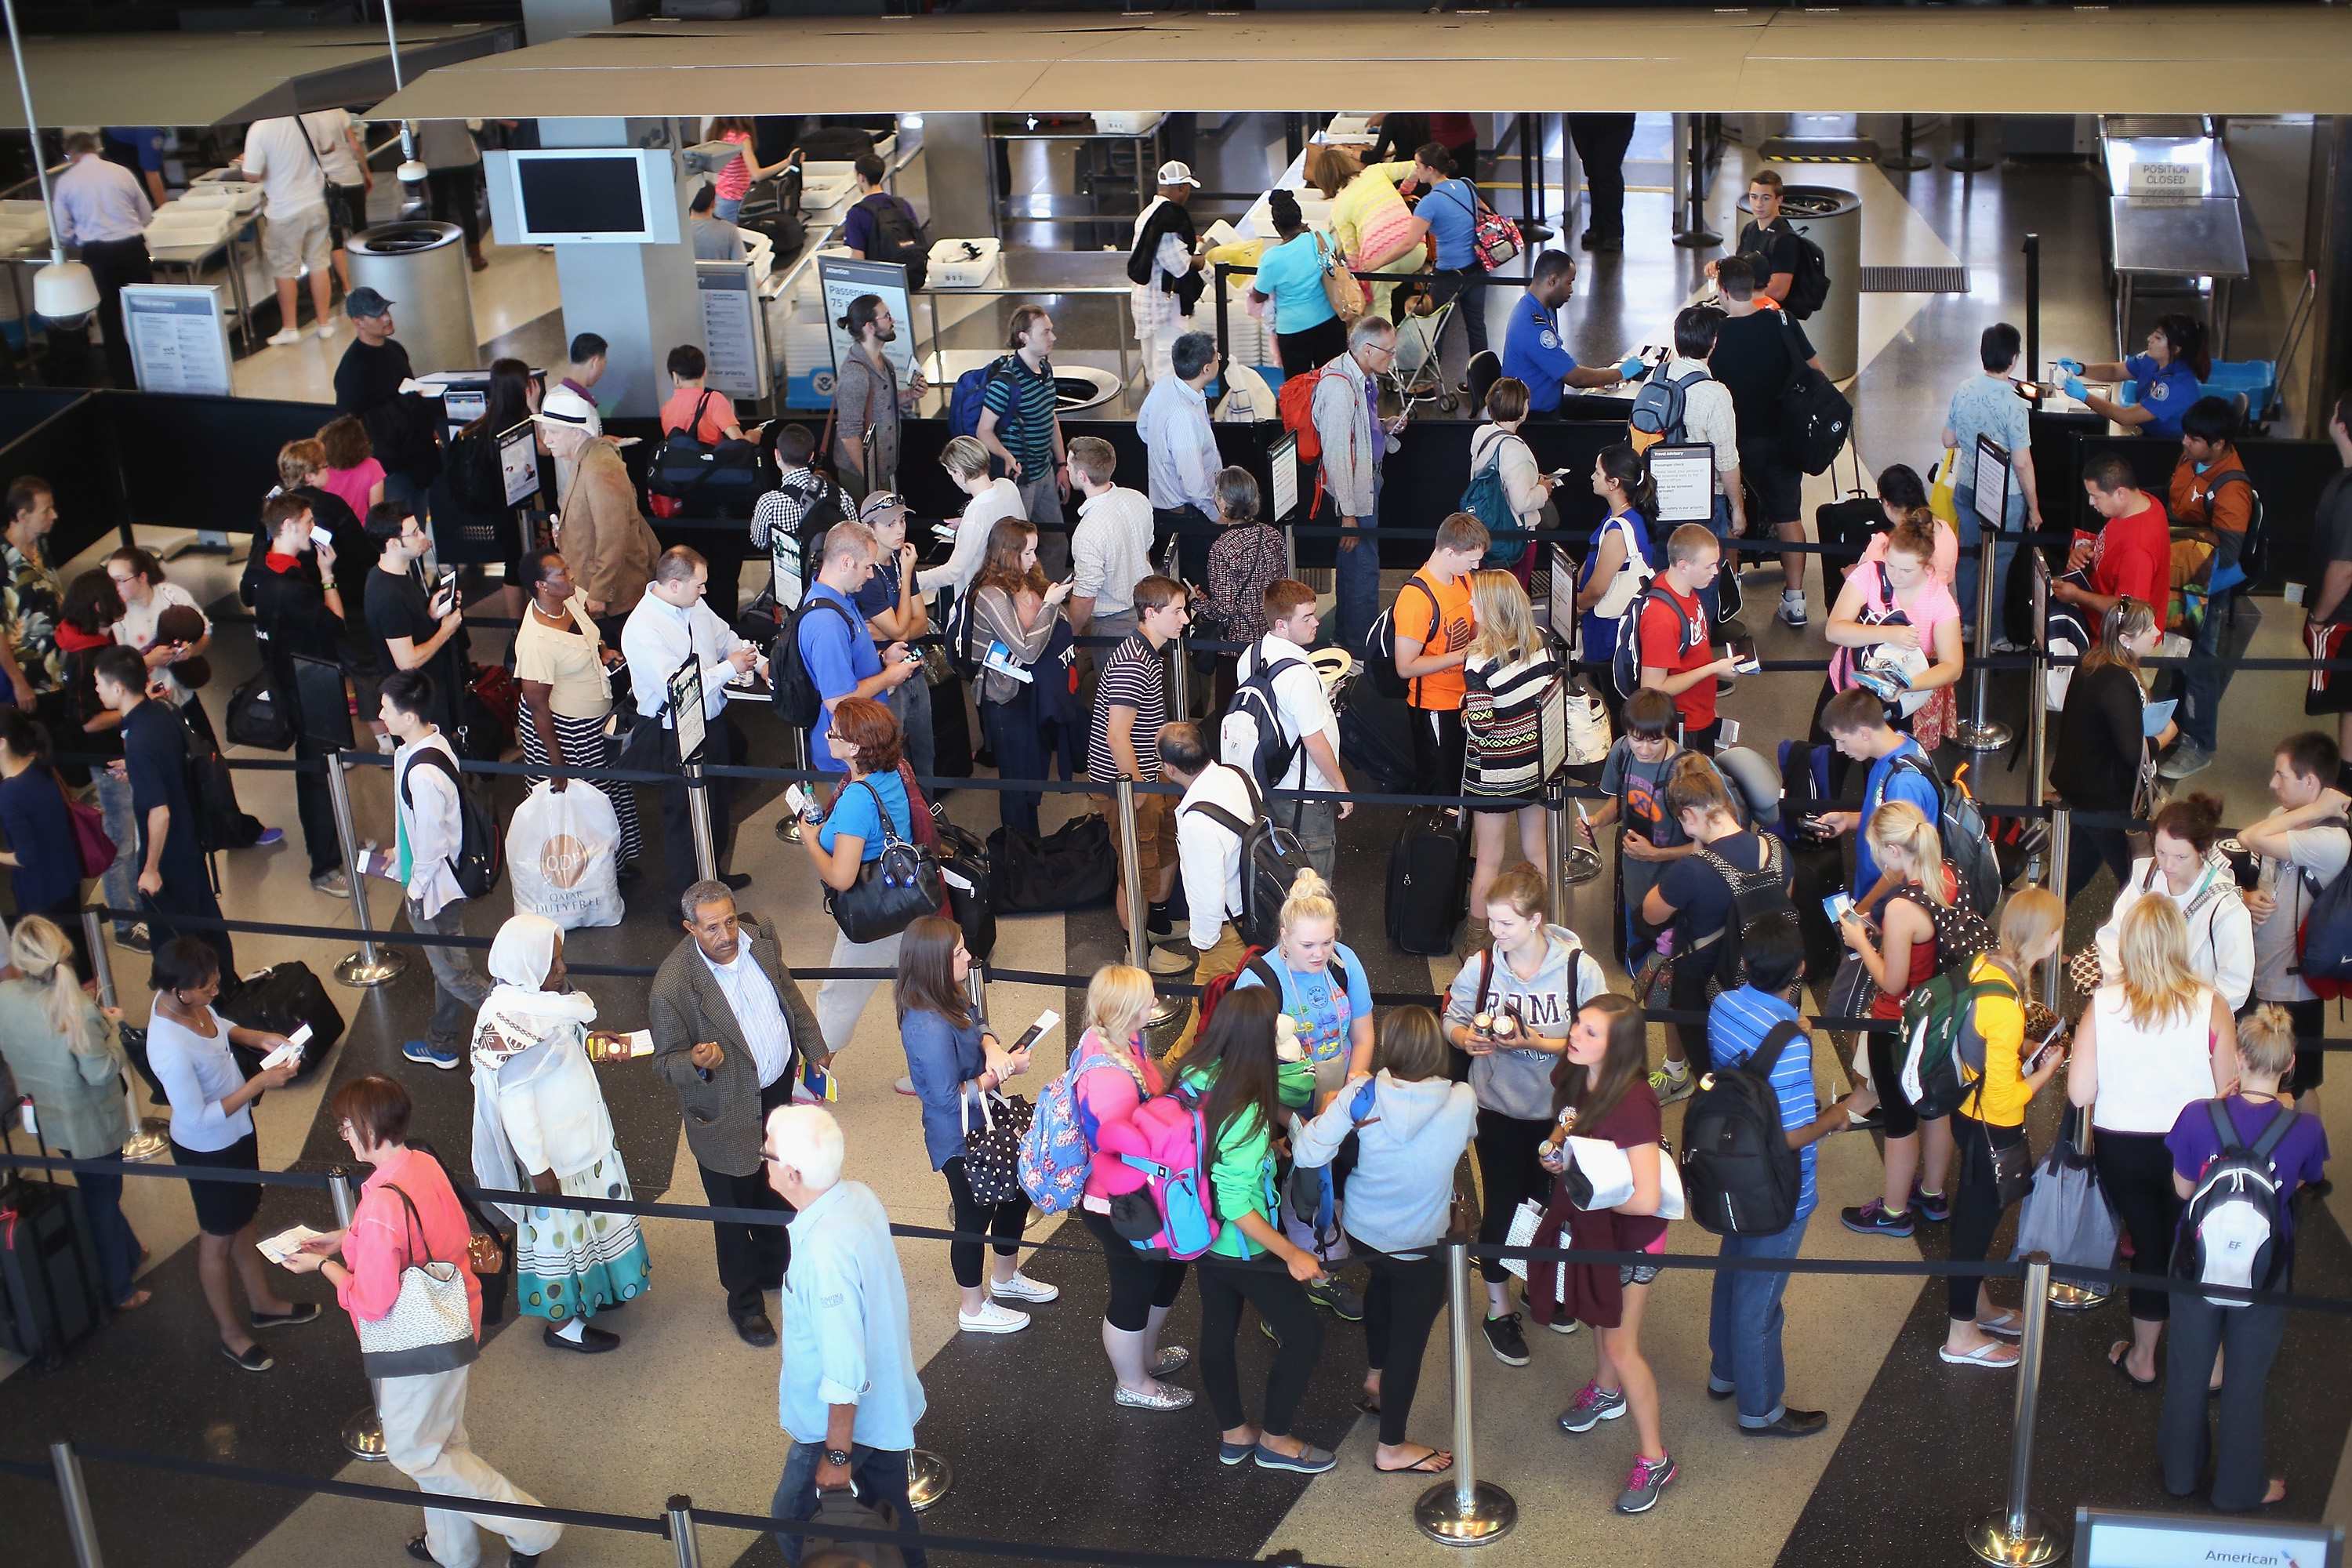 Air Fares Rise To Highest Level In 15 Years As Consumer Prices Rise